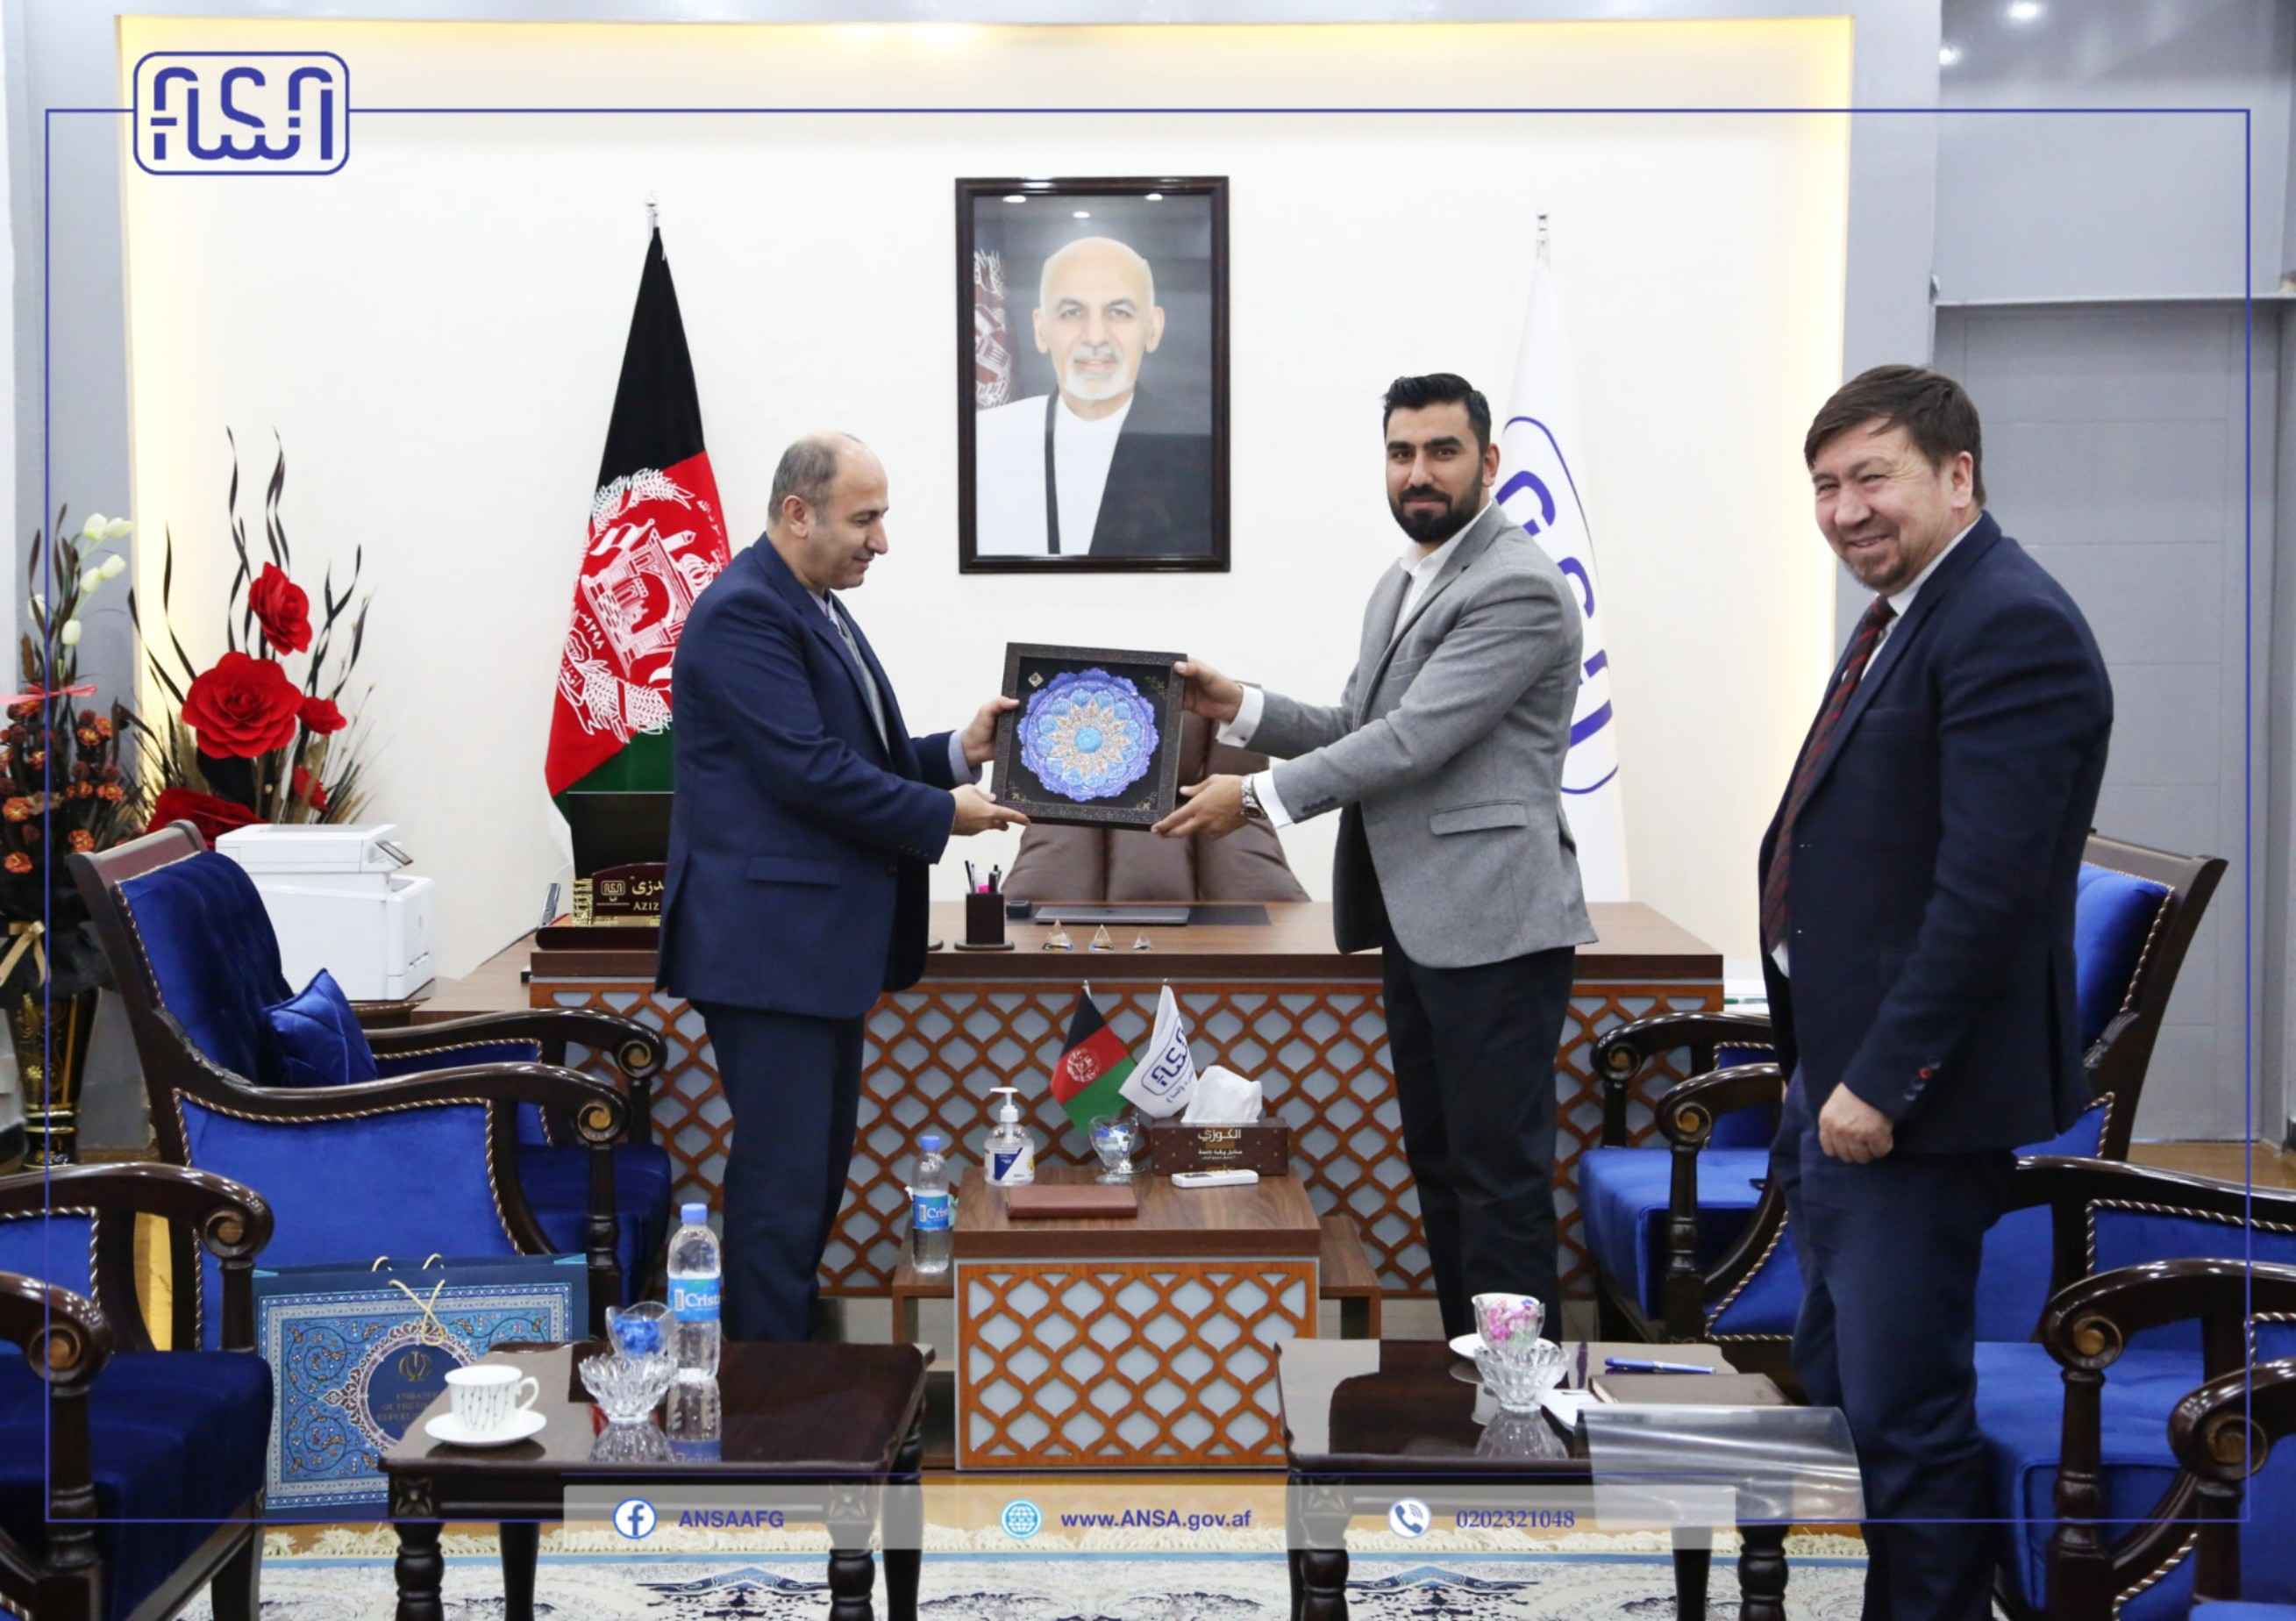 The Director General of Afghanistan National Standards Authority met with the Advisor to the Minister of Interior of Iran on the Joint Commission for Economic Cooperation between Afghanistan and Iran.